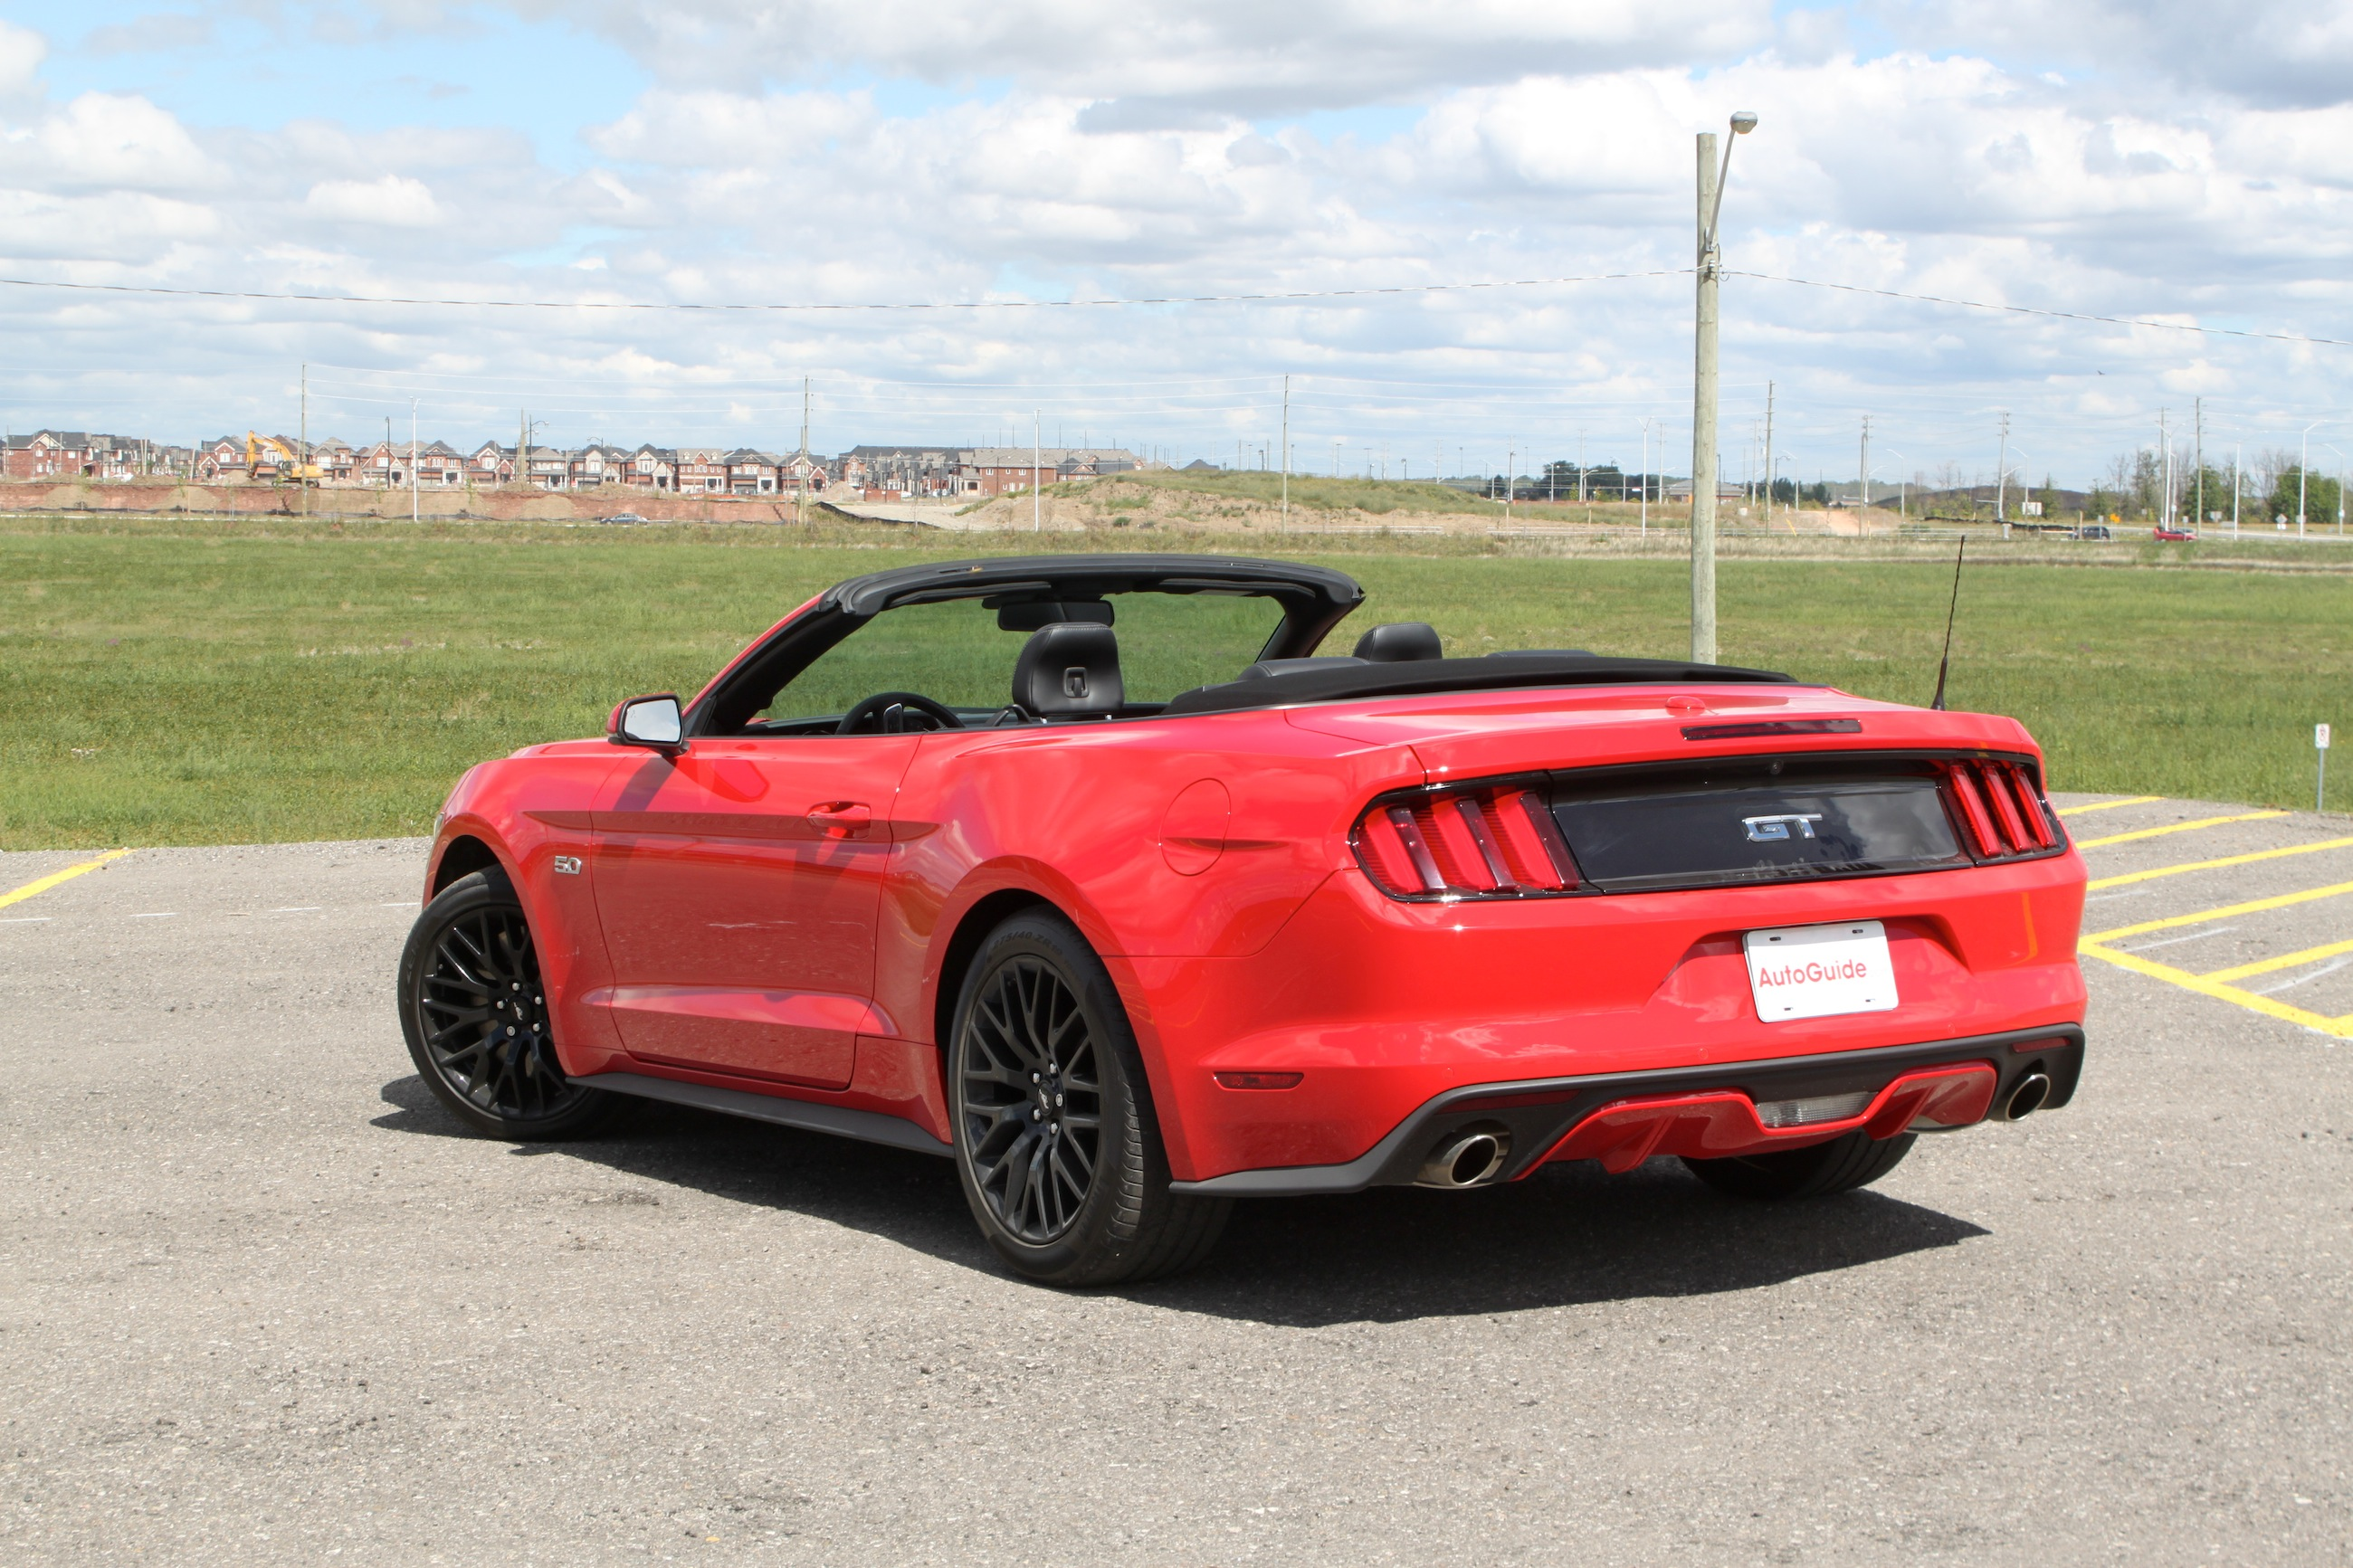 2017 mustang gt convertible review 10